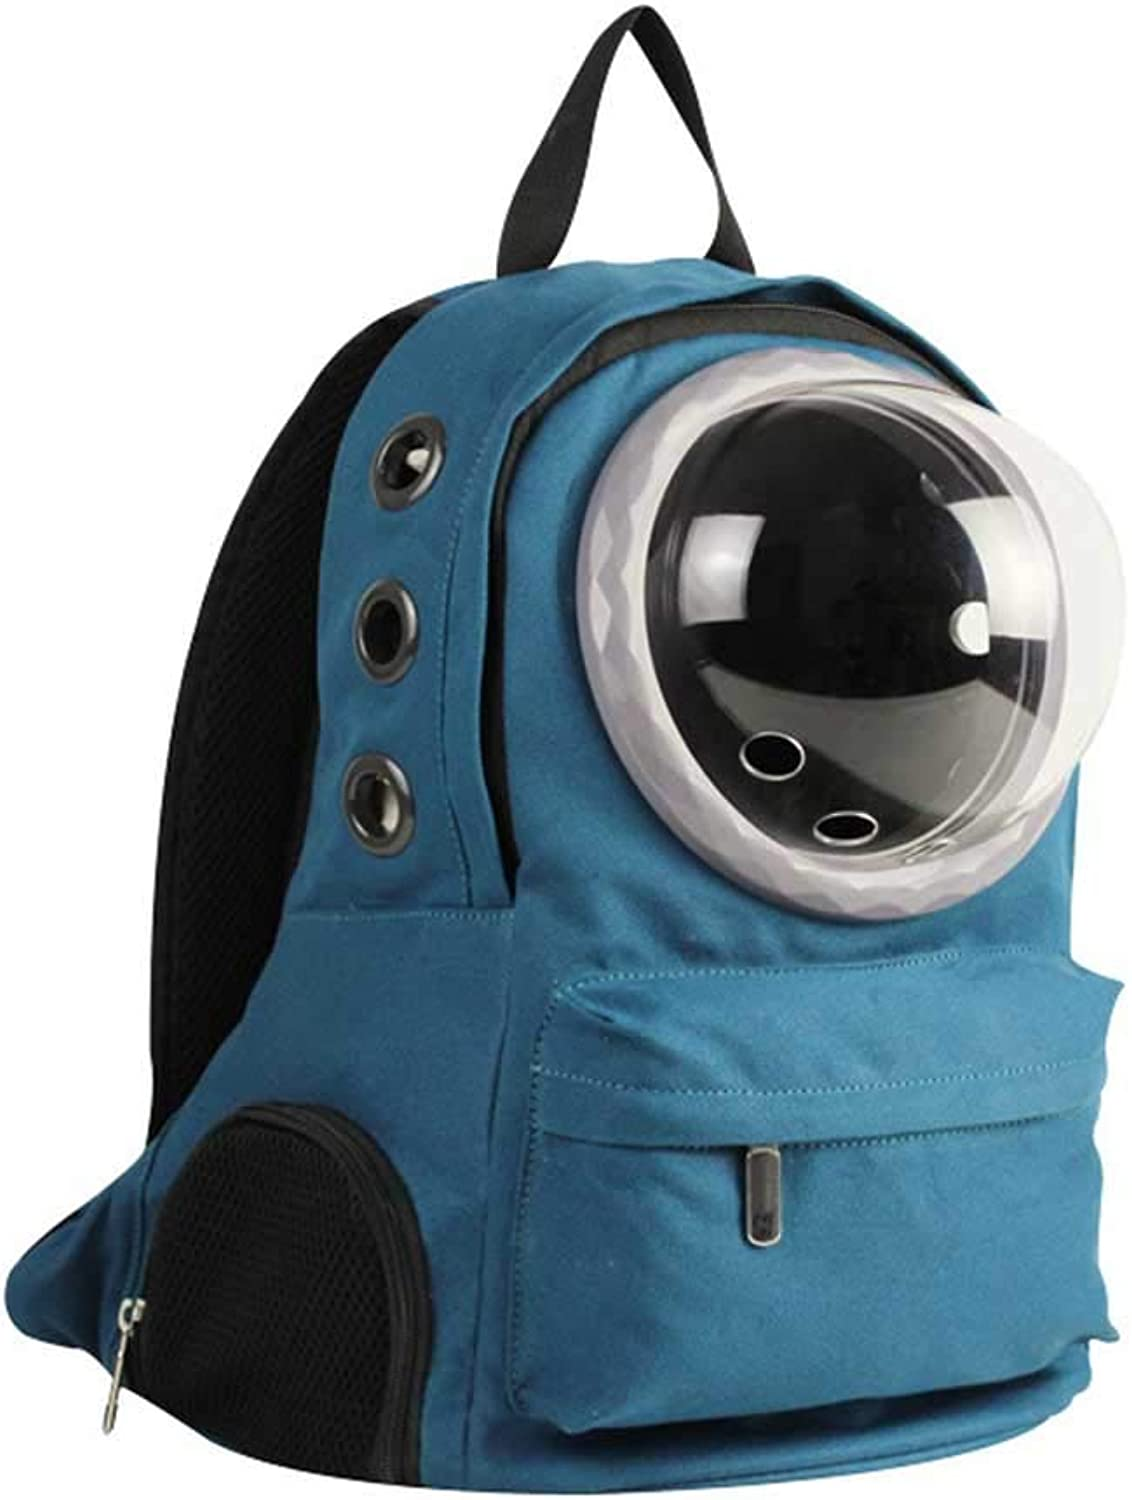 Dog Backpack bluee Breathable Canvas Material Travel Hiking Camping Cat and Dog Backpack